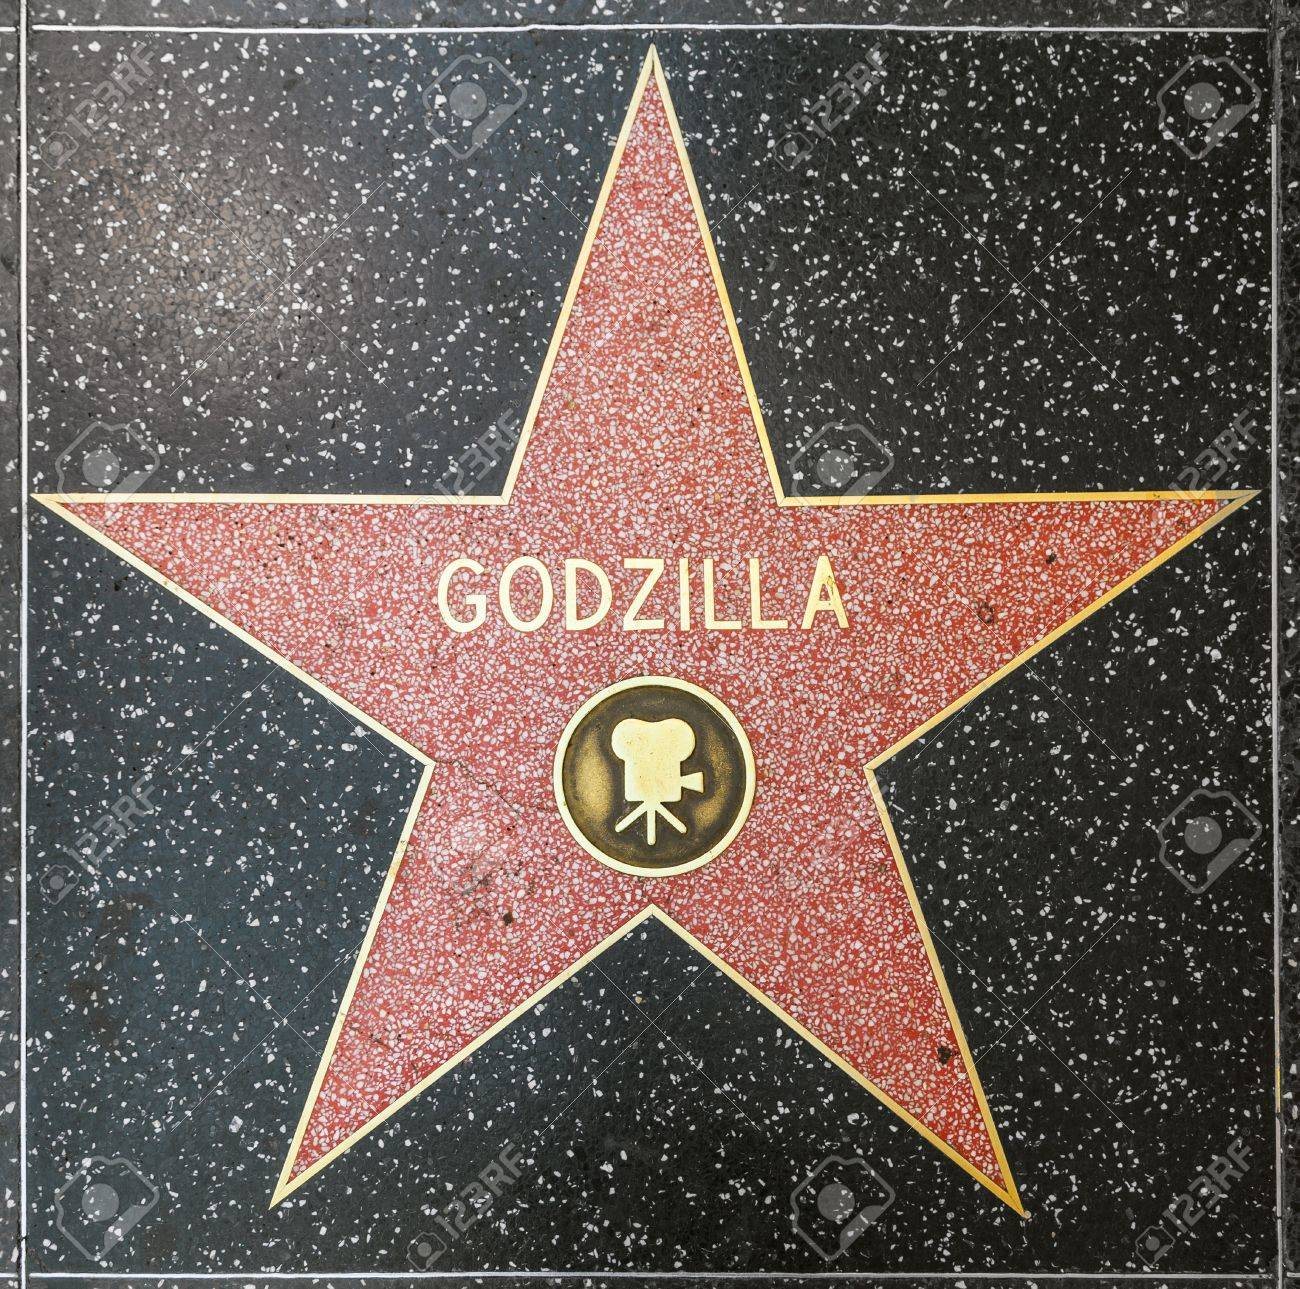 HOLLYWOOD - JUNE 26: Godzillas star on Hollywood Walk of Fame on June 26, 2012 in Hollywood, California. This star is located on Hollywood Blvd. and is one of 2400 celebrity stars. Stock Photo - 14612592